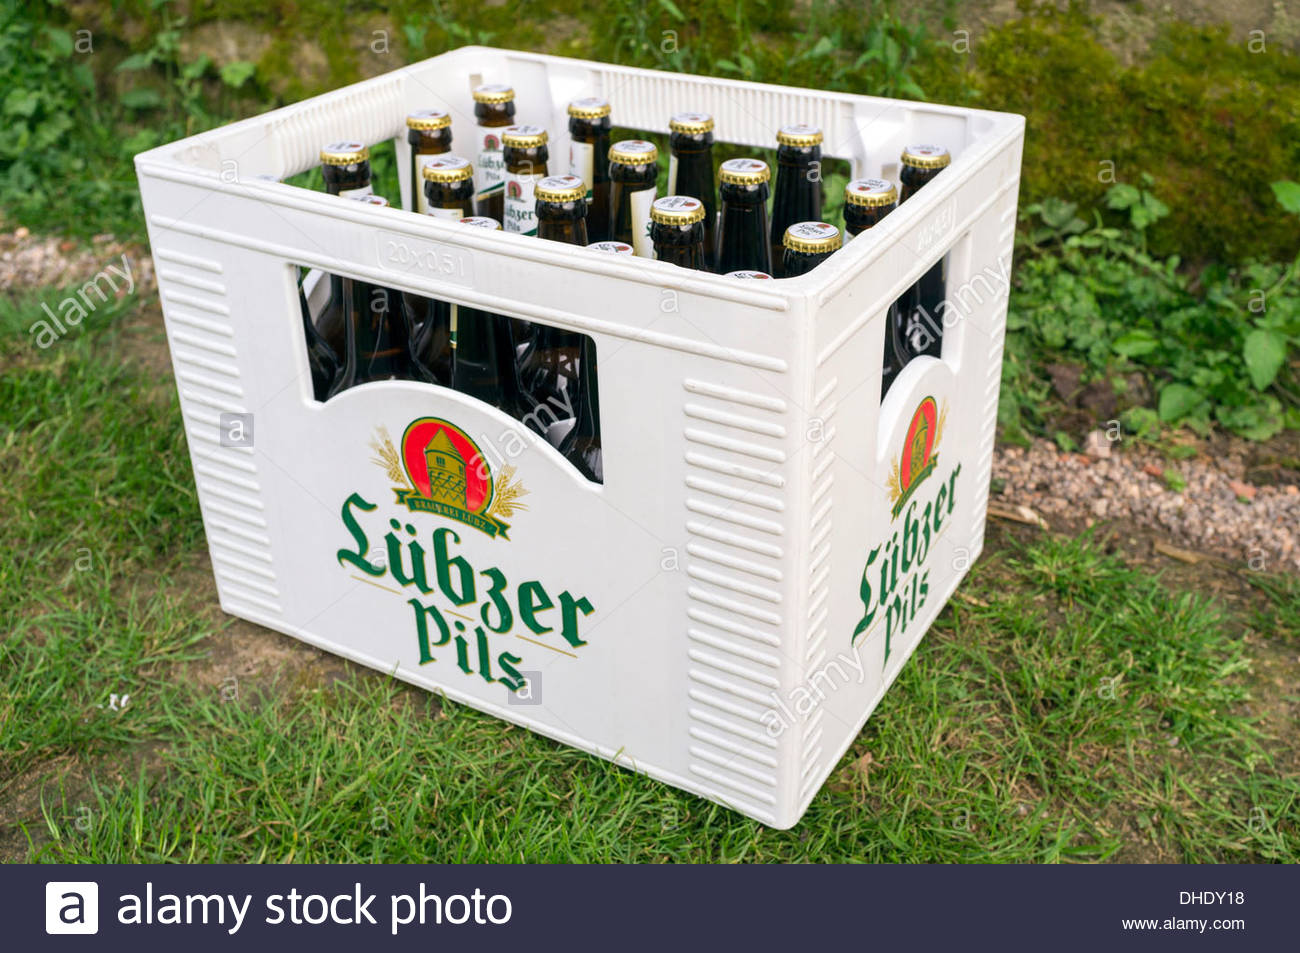 German Beer, Lübzer Pils, beer bottles in plastic bierkasten case - Stock Image